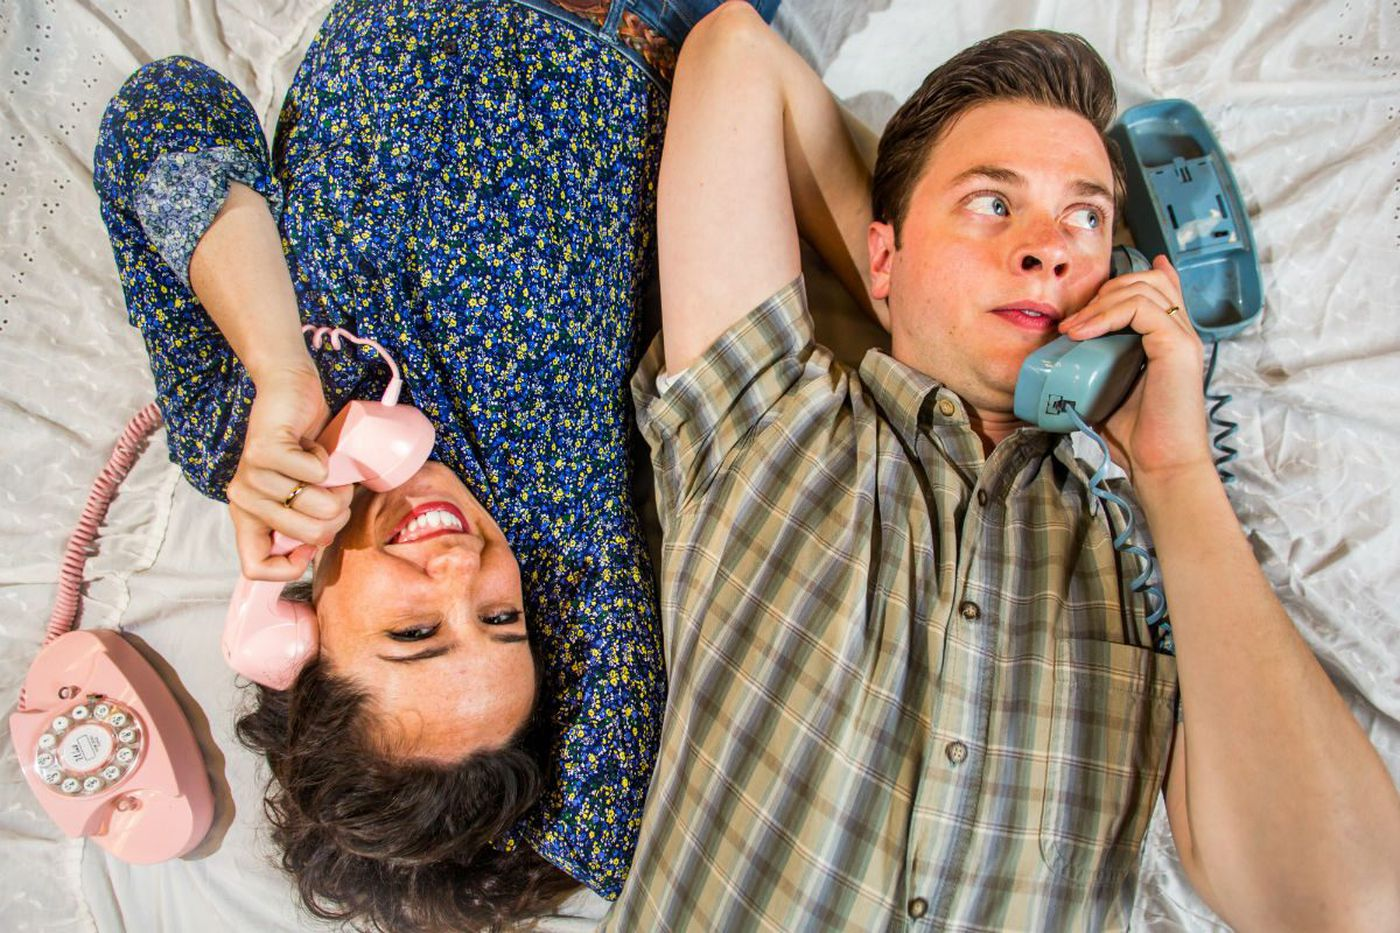 'TouchTones' at the Arden: Early communication-age intimacy (or is it?)